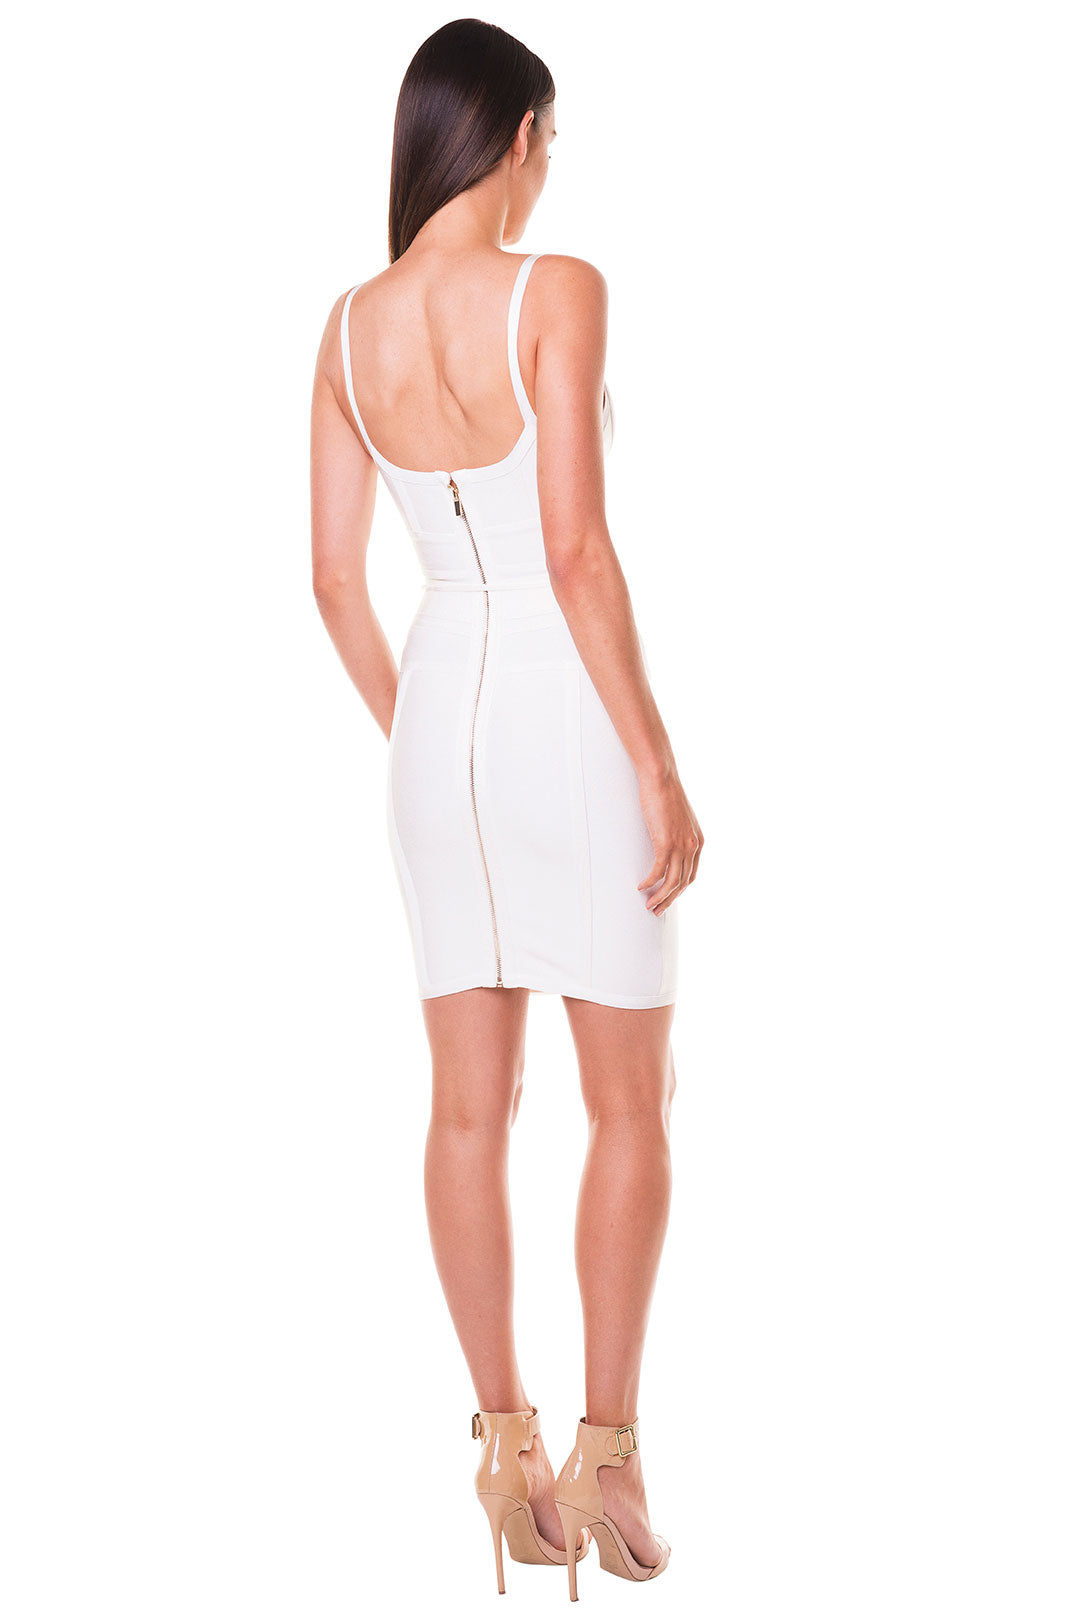 Eliza Bandage Dress - White [SAMPLE SALE]